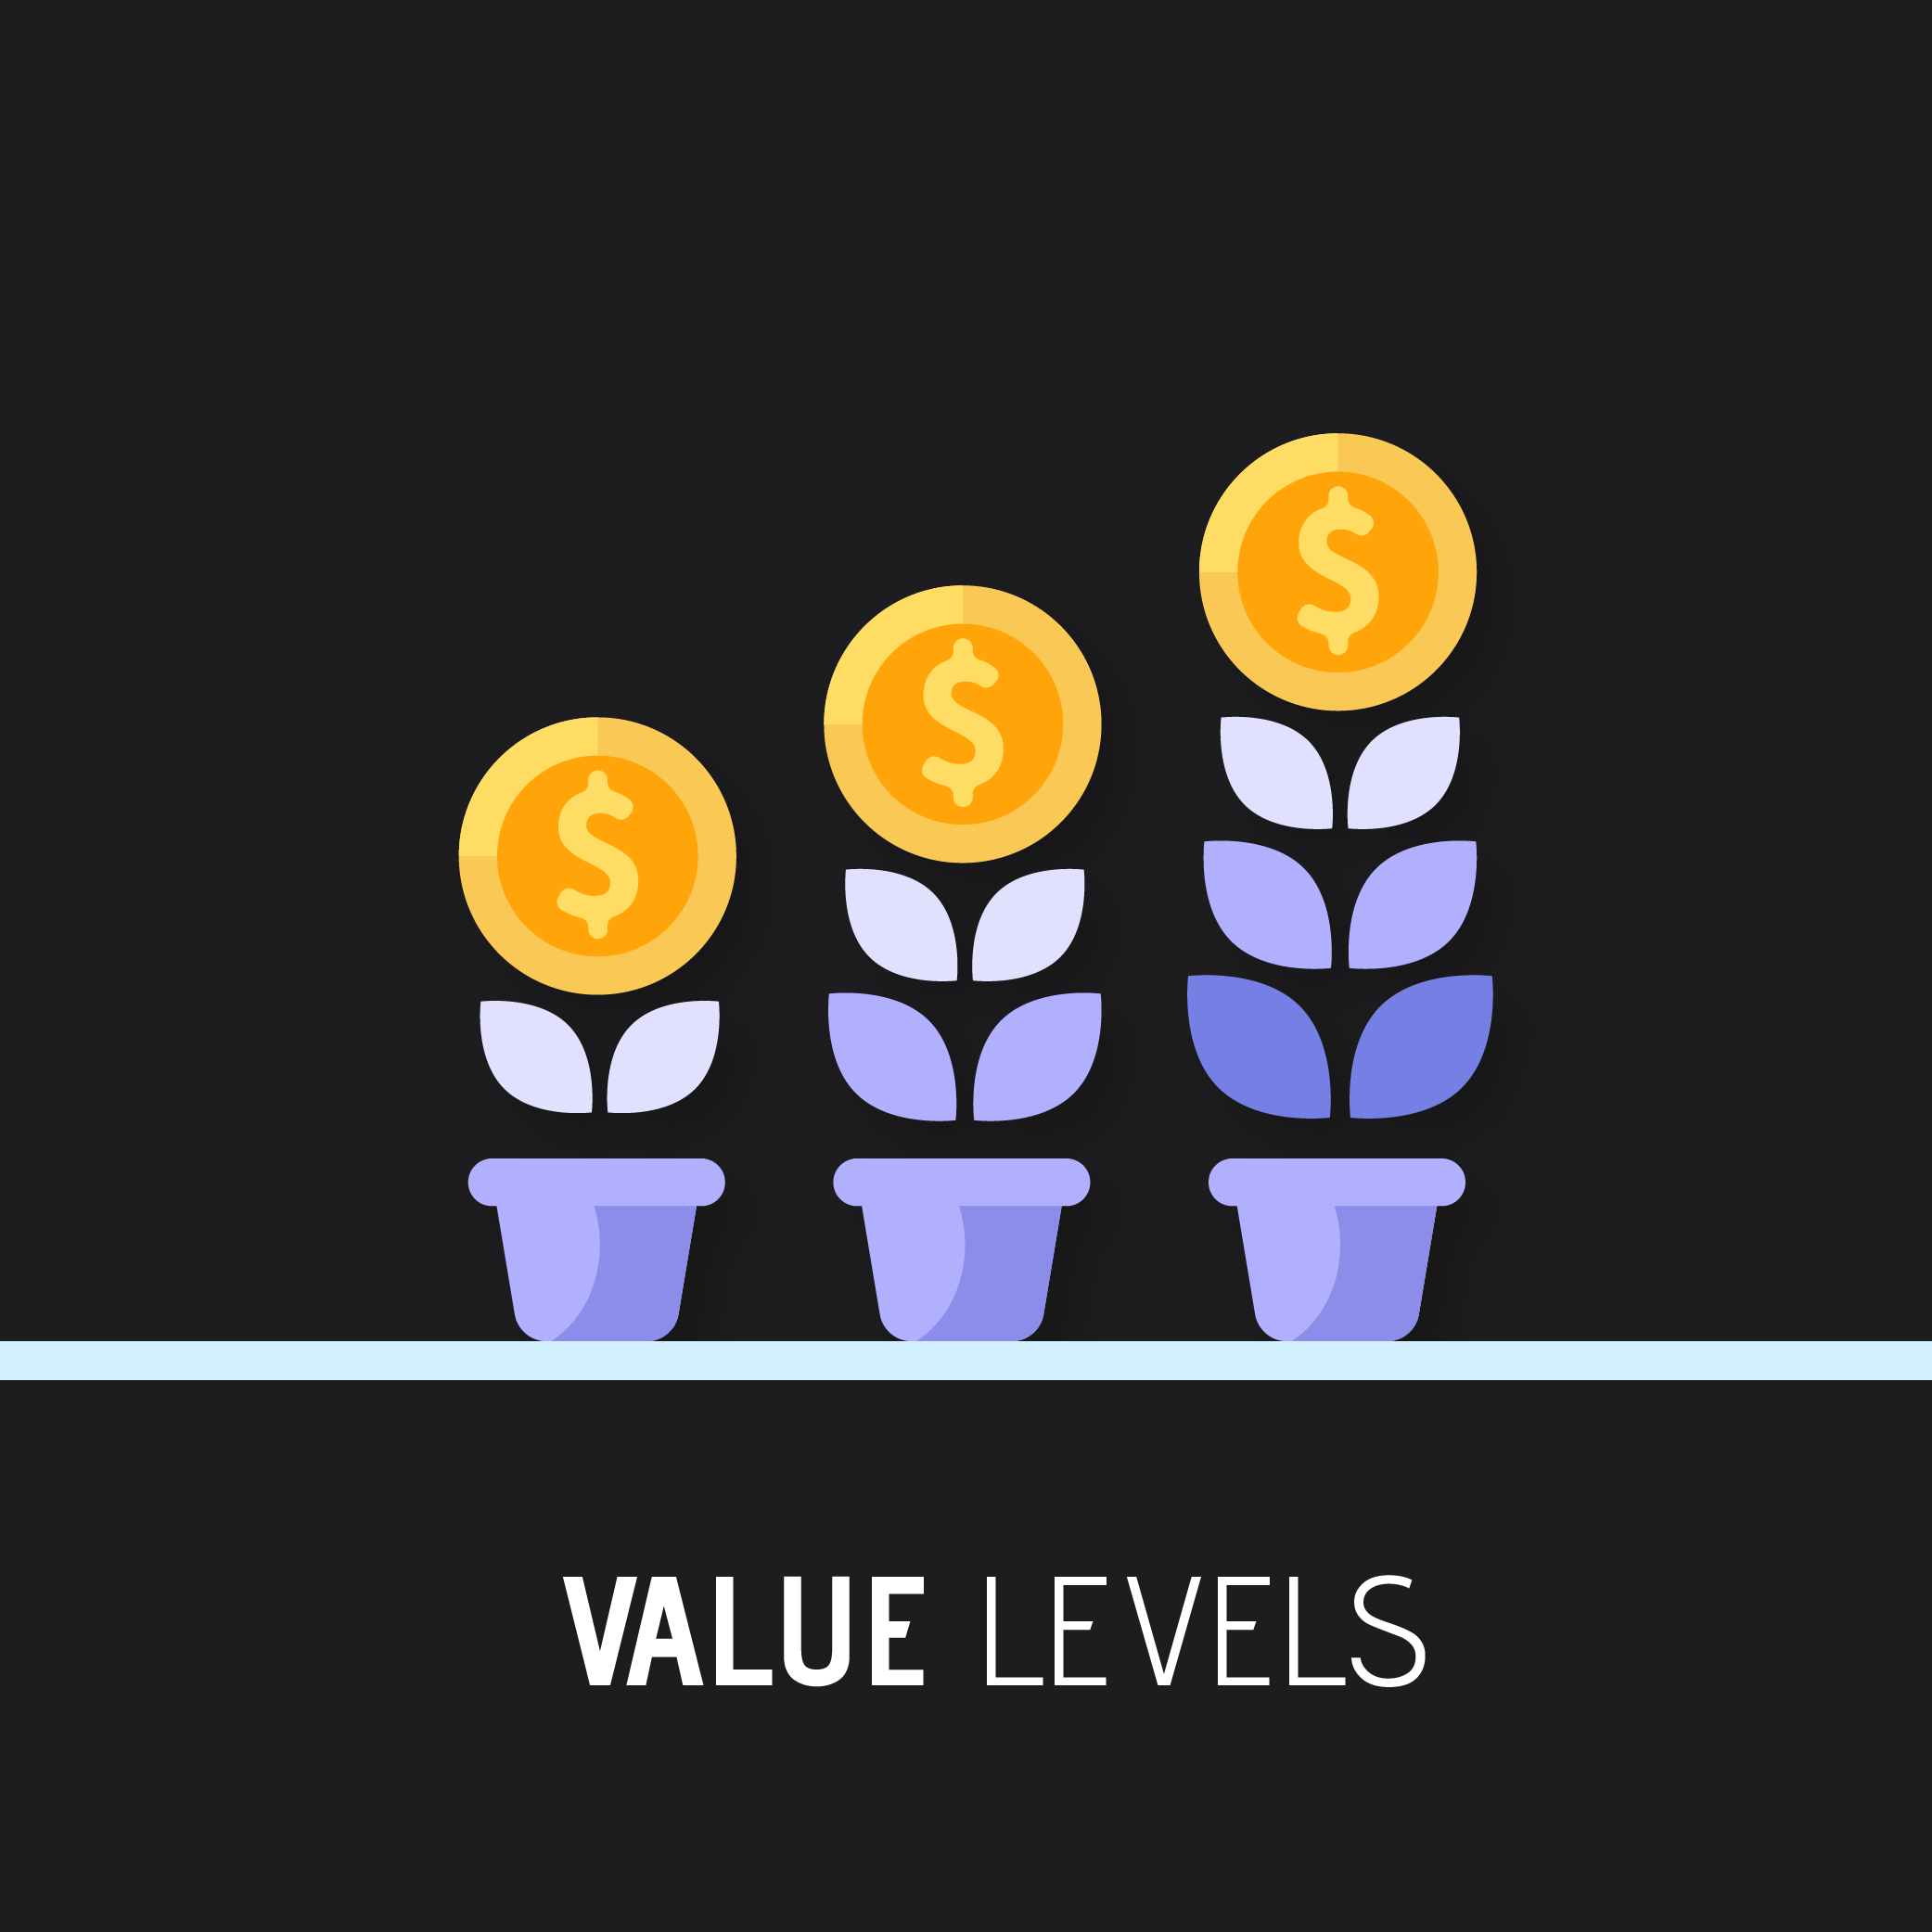 A photo about value level with plants representing scaling level growth.